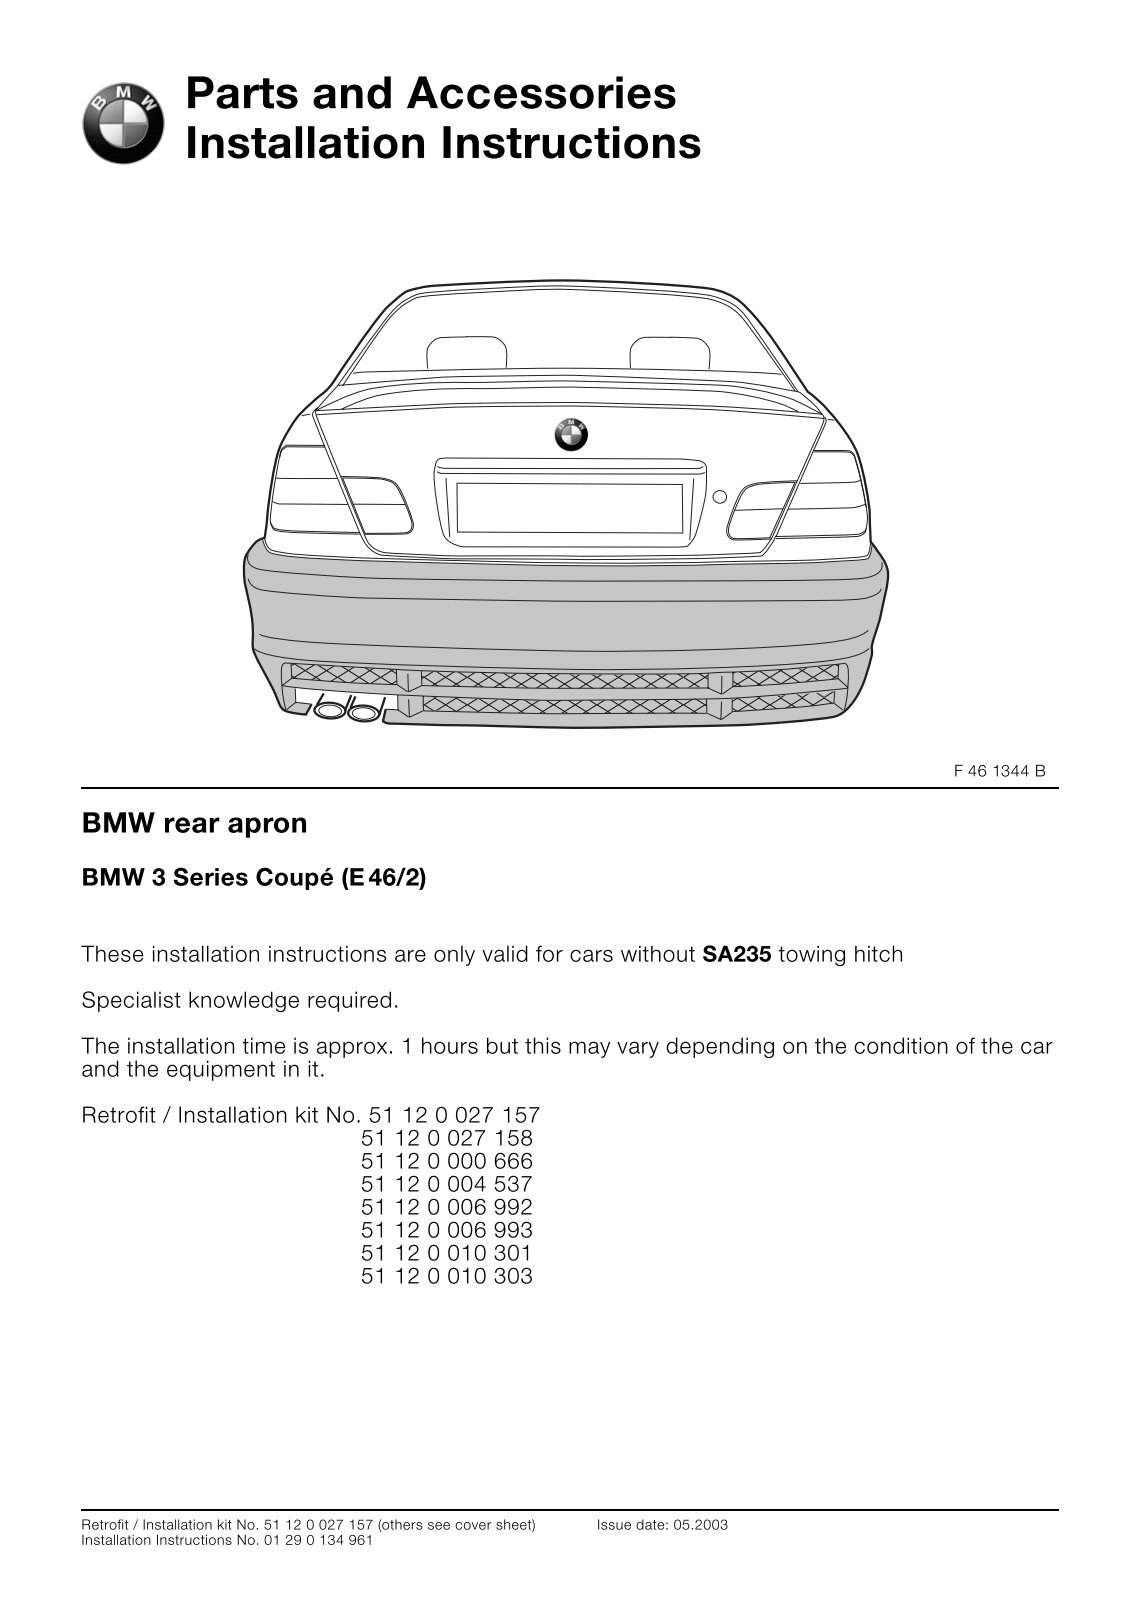 Beautiful E46 Tail Light Wiring Diagram Gift Electrical and Wiring